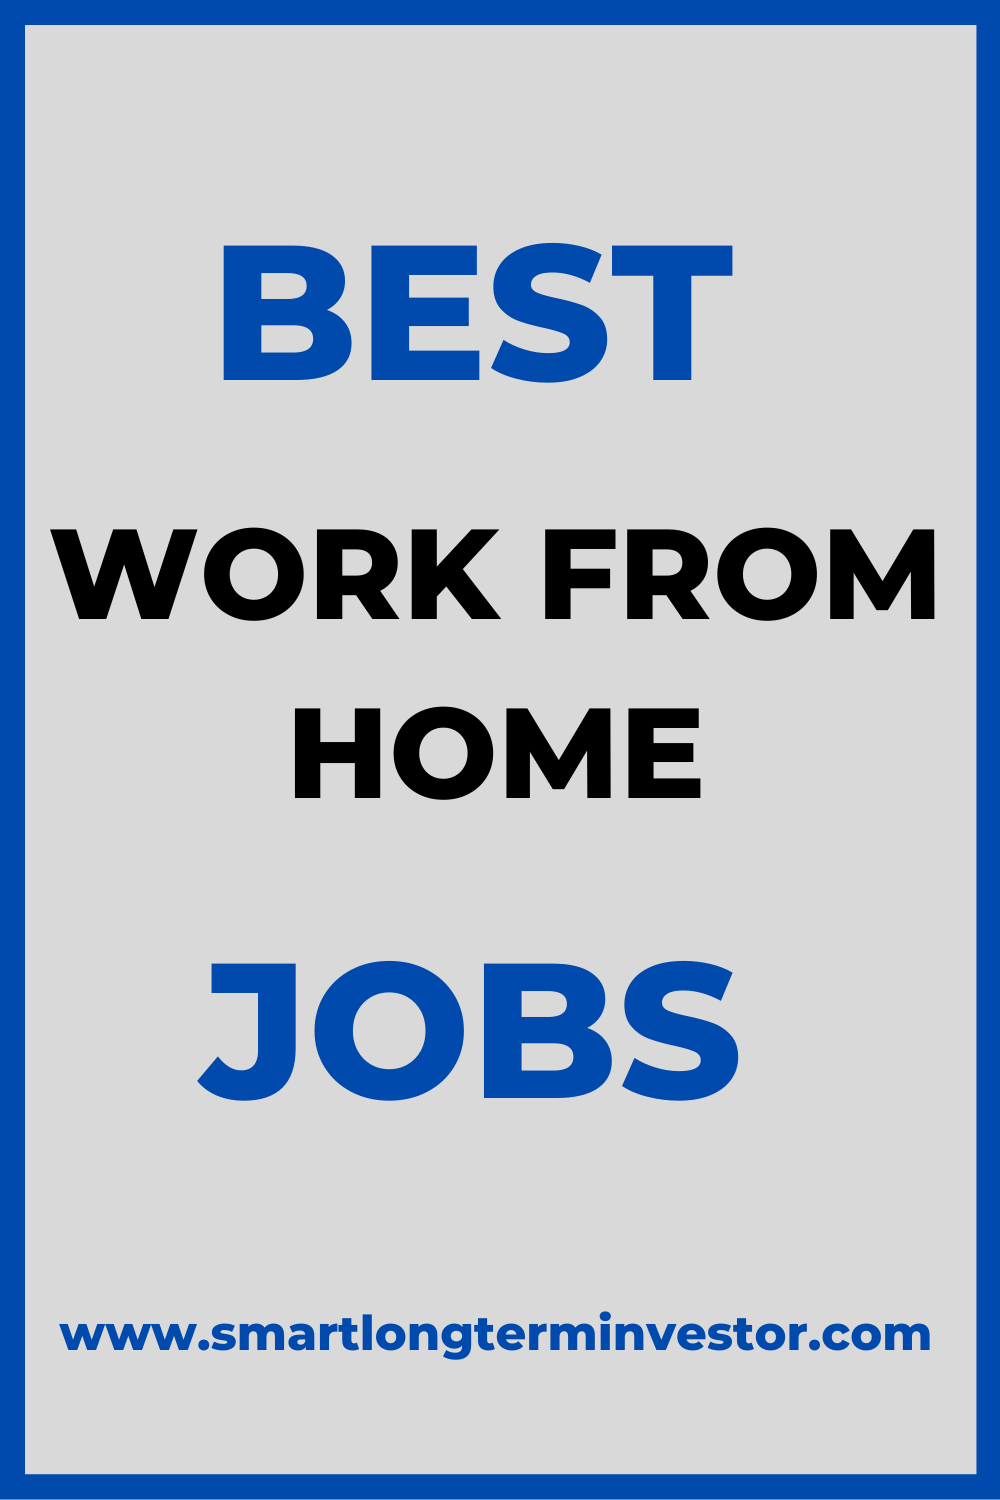 Best Work From Home Jobs - Why Affiliate Marketing?